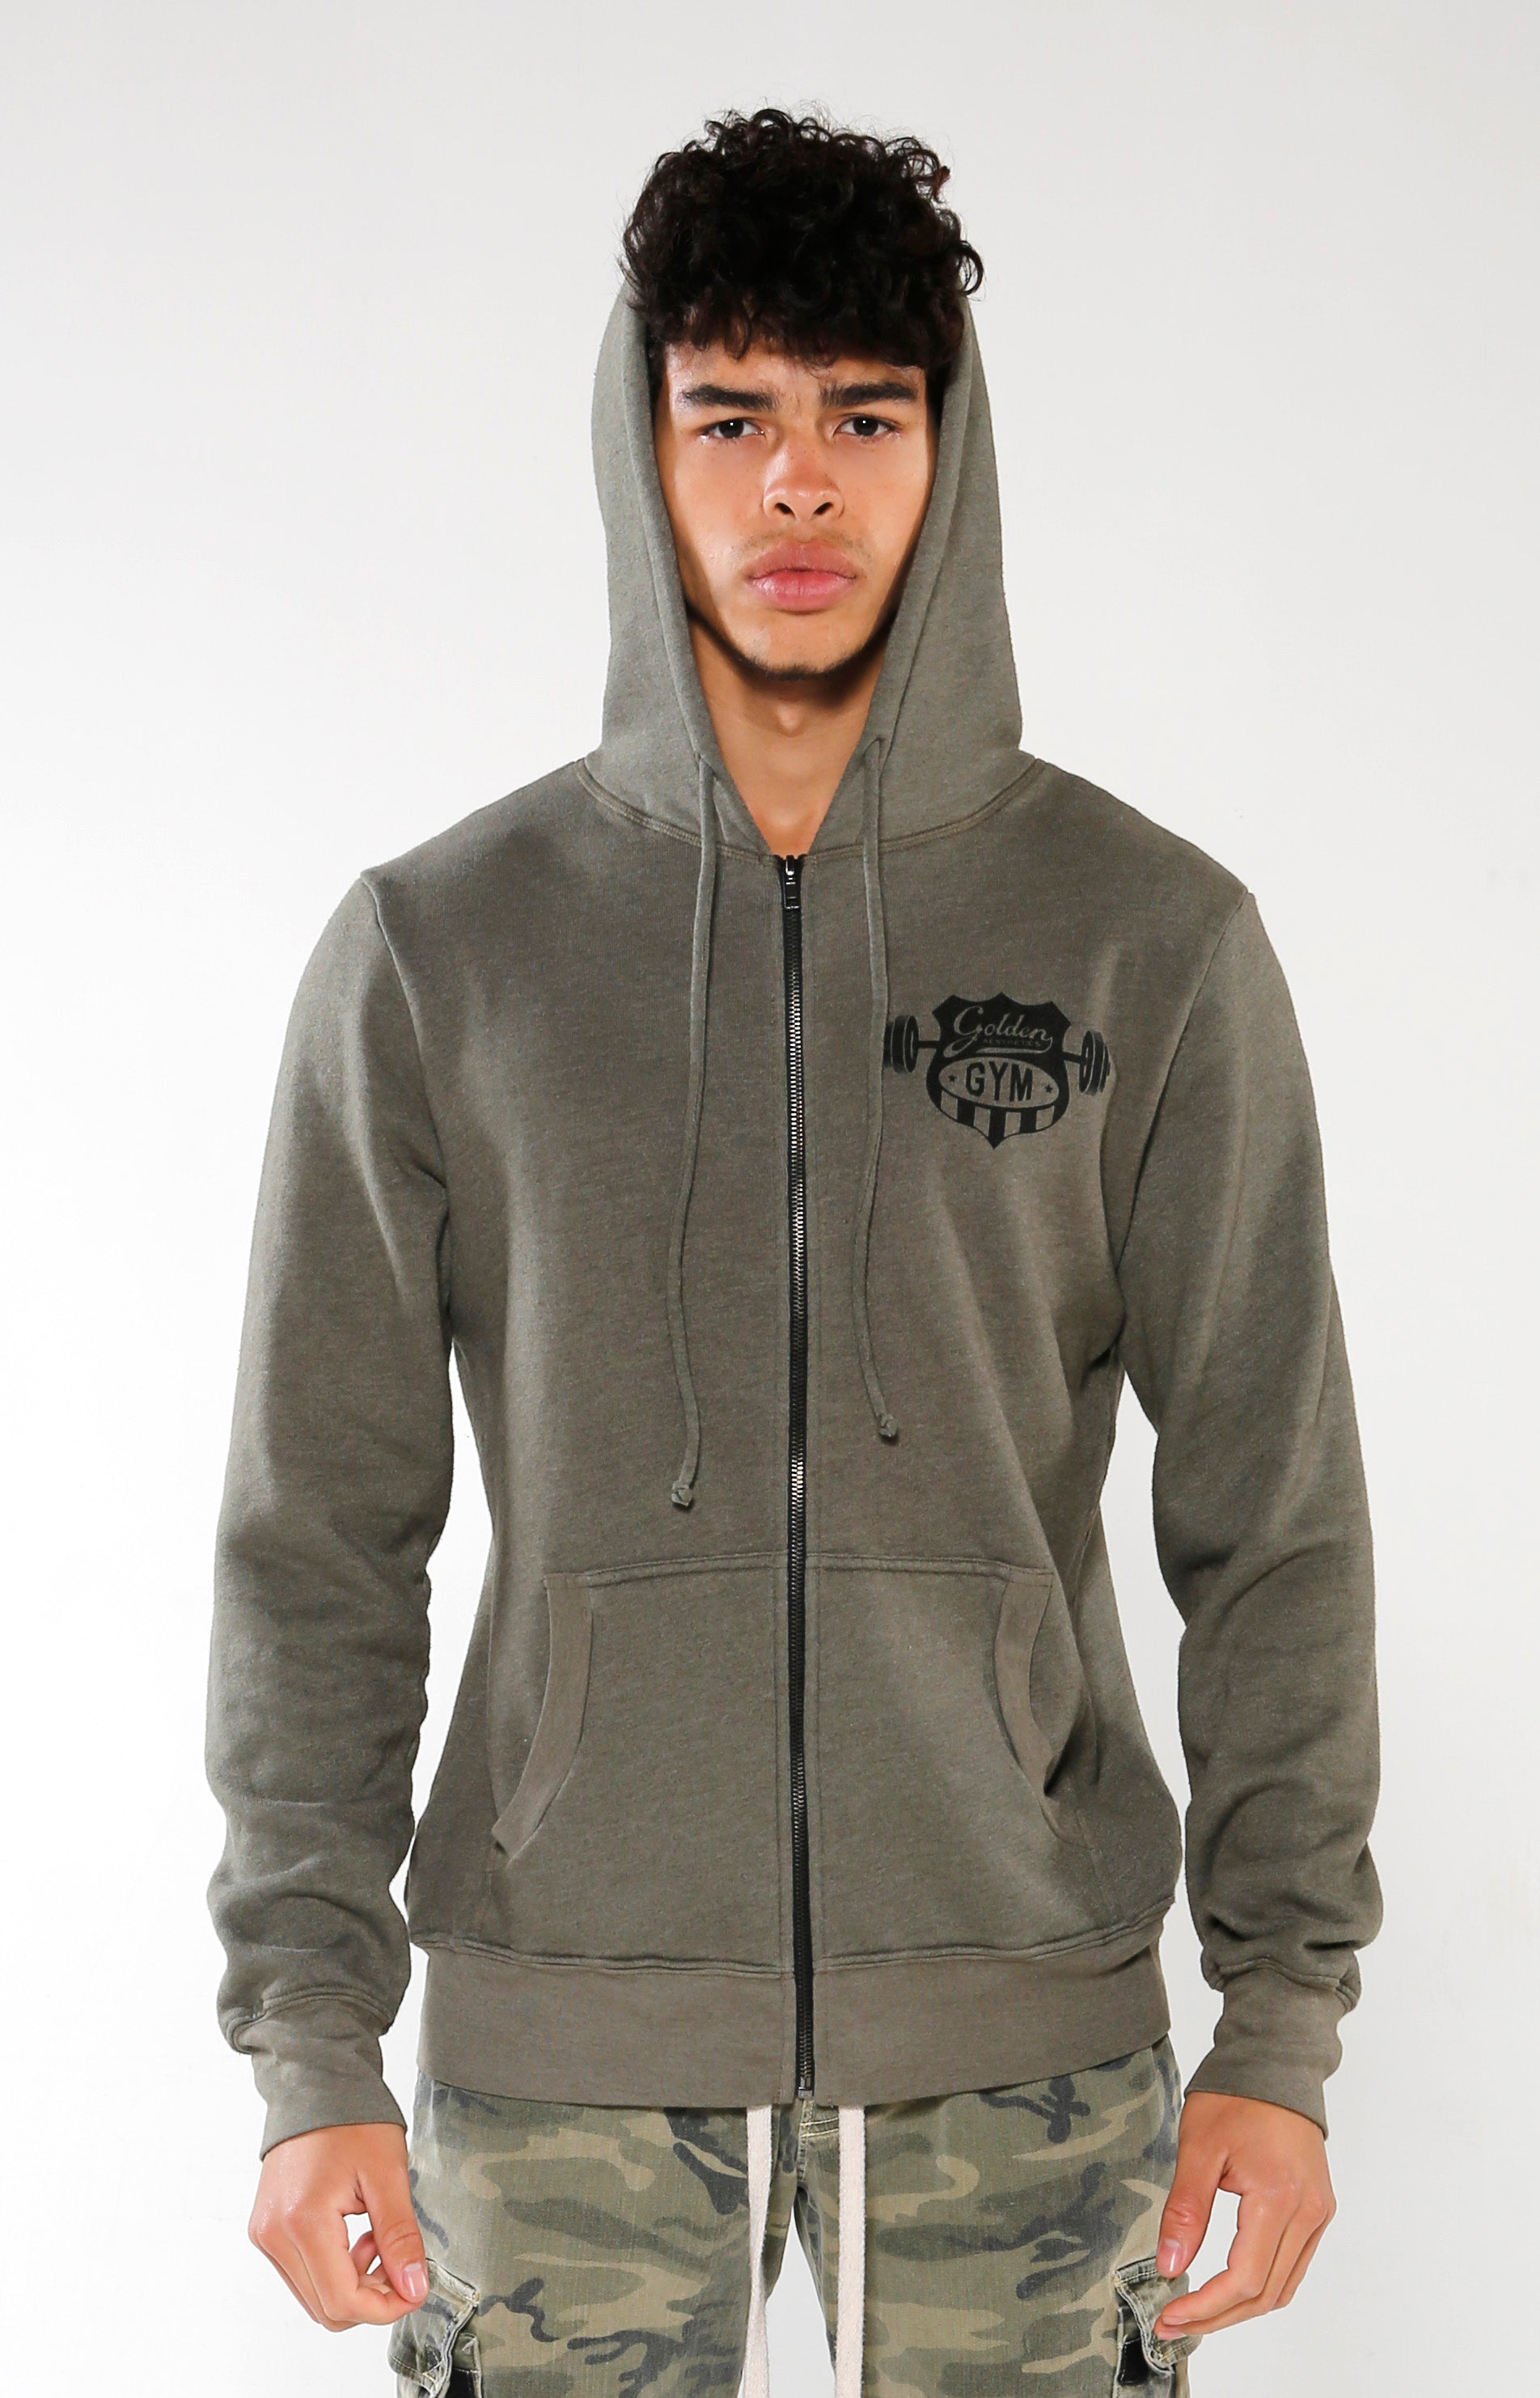 Men's Olive Gym Crest Hoodie | Golden Aesthetics - Golden Aesthetics